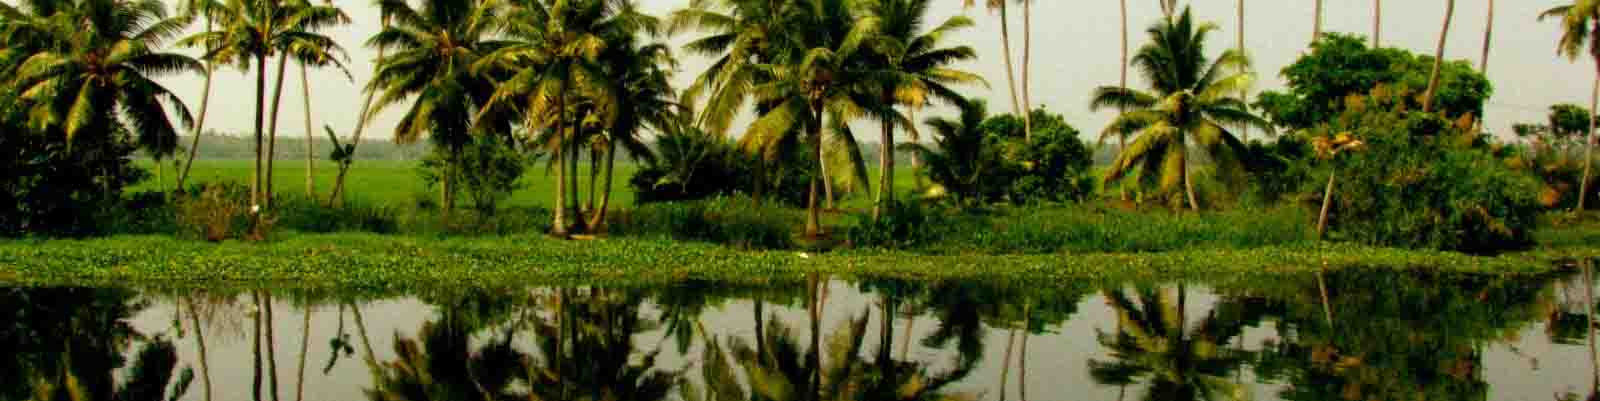 kerala tour and honeymoon packages from Surat